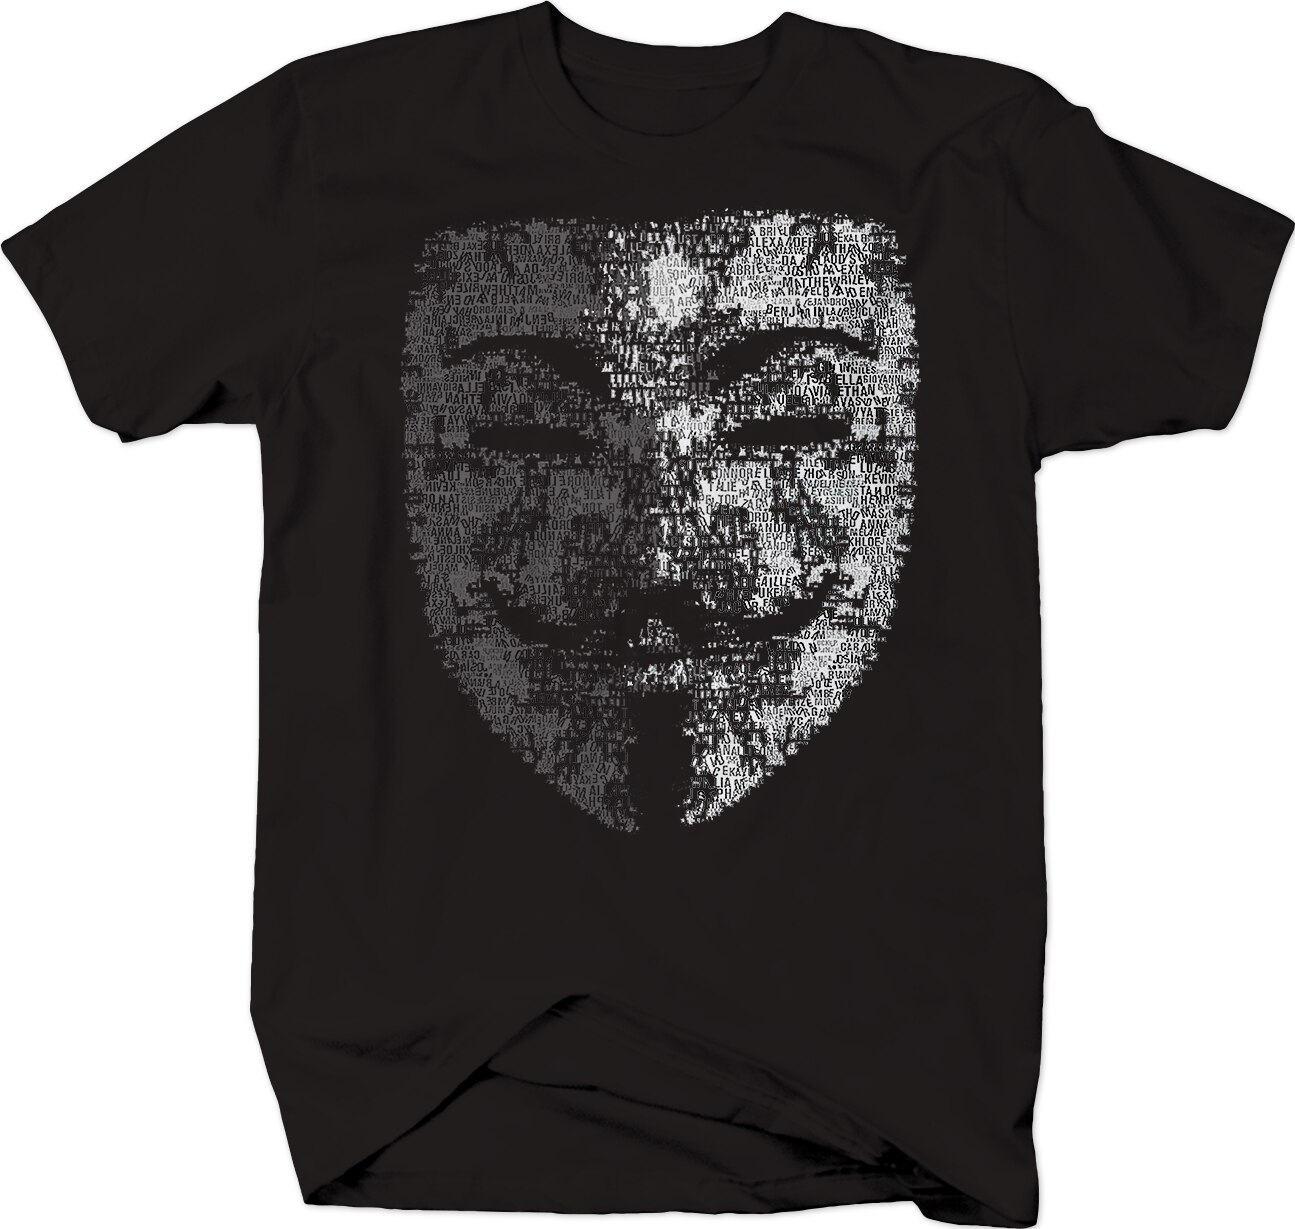 Guy Fawkes Anonymous Mask Free Information T-Shirt Mens